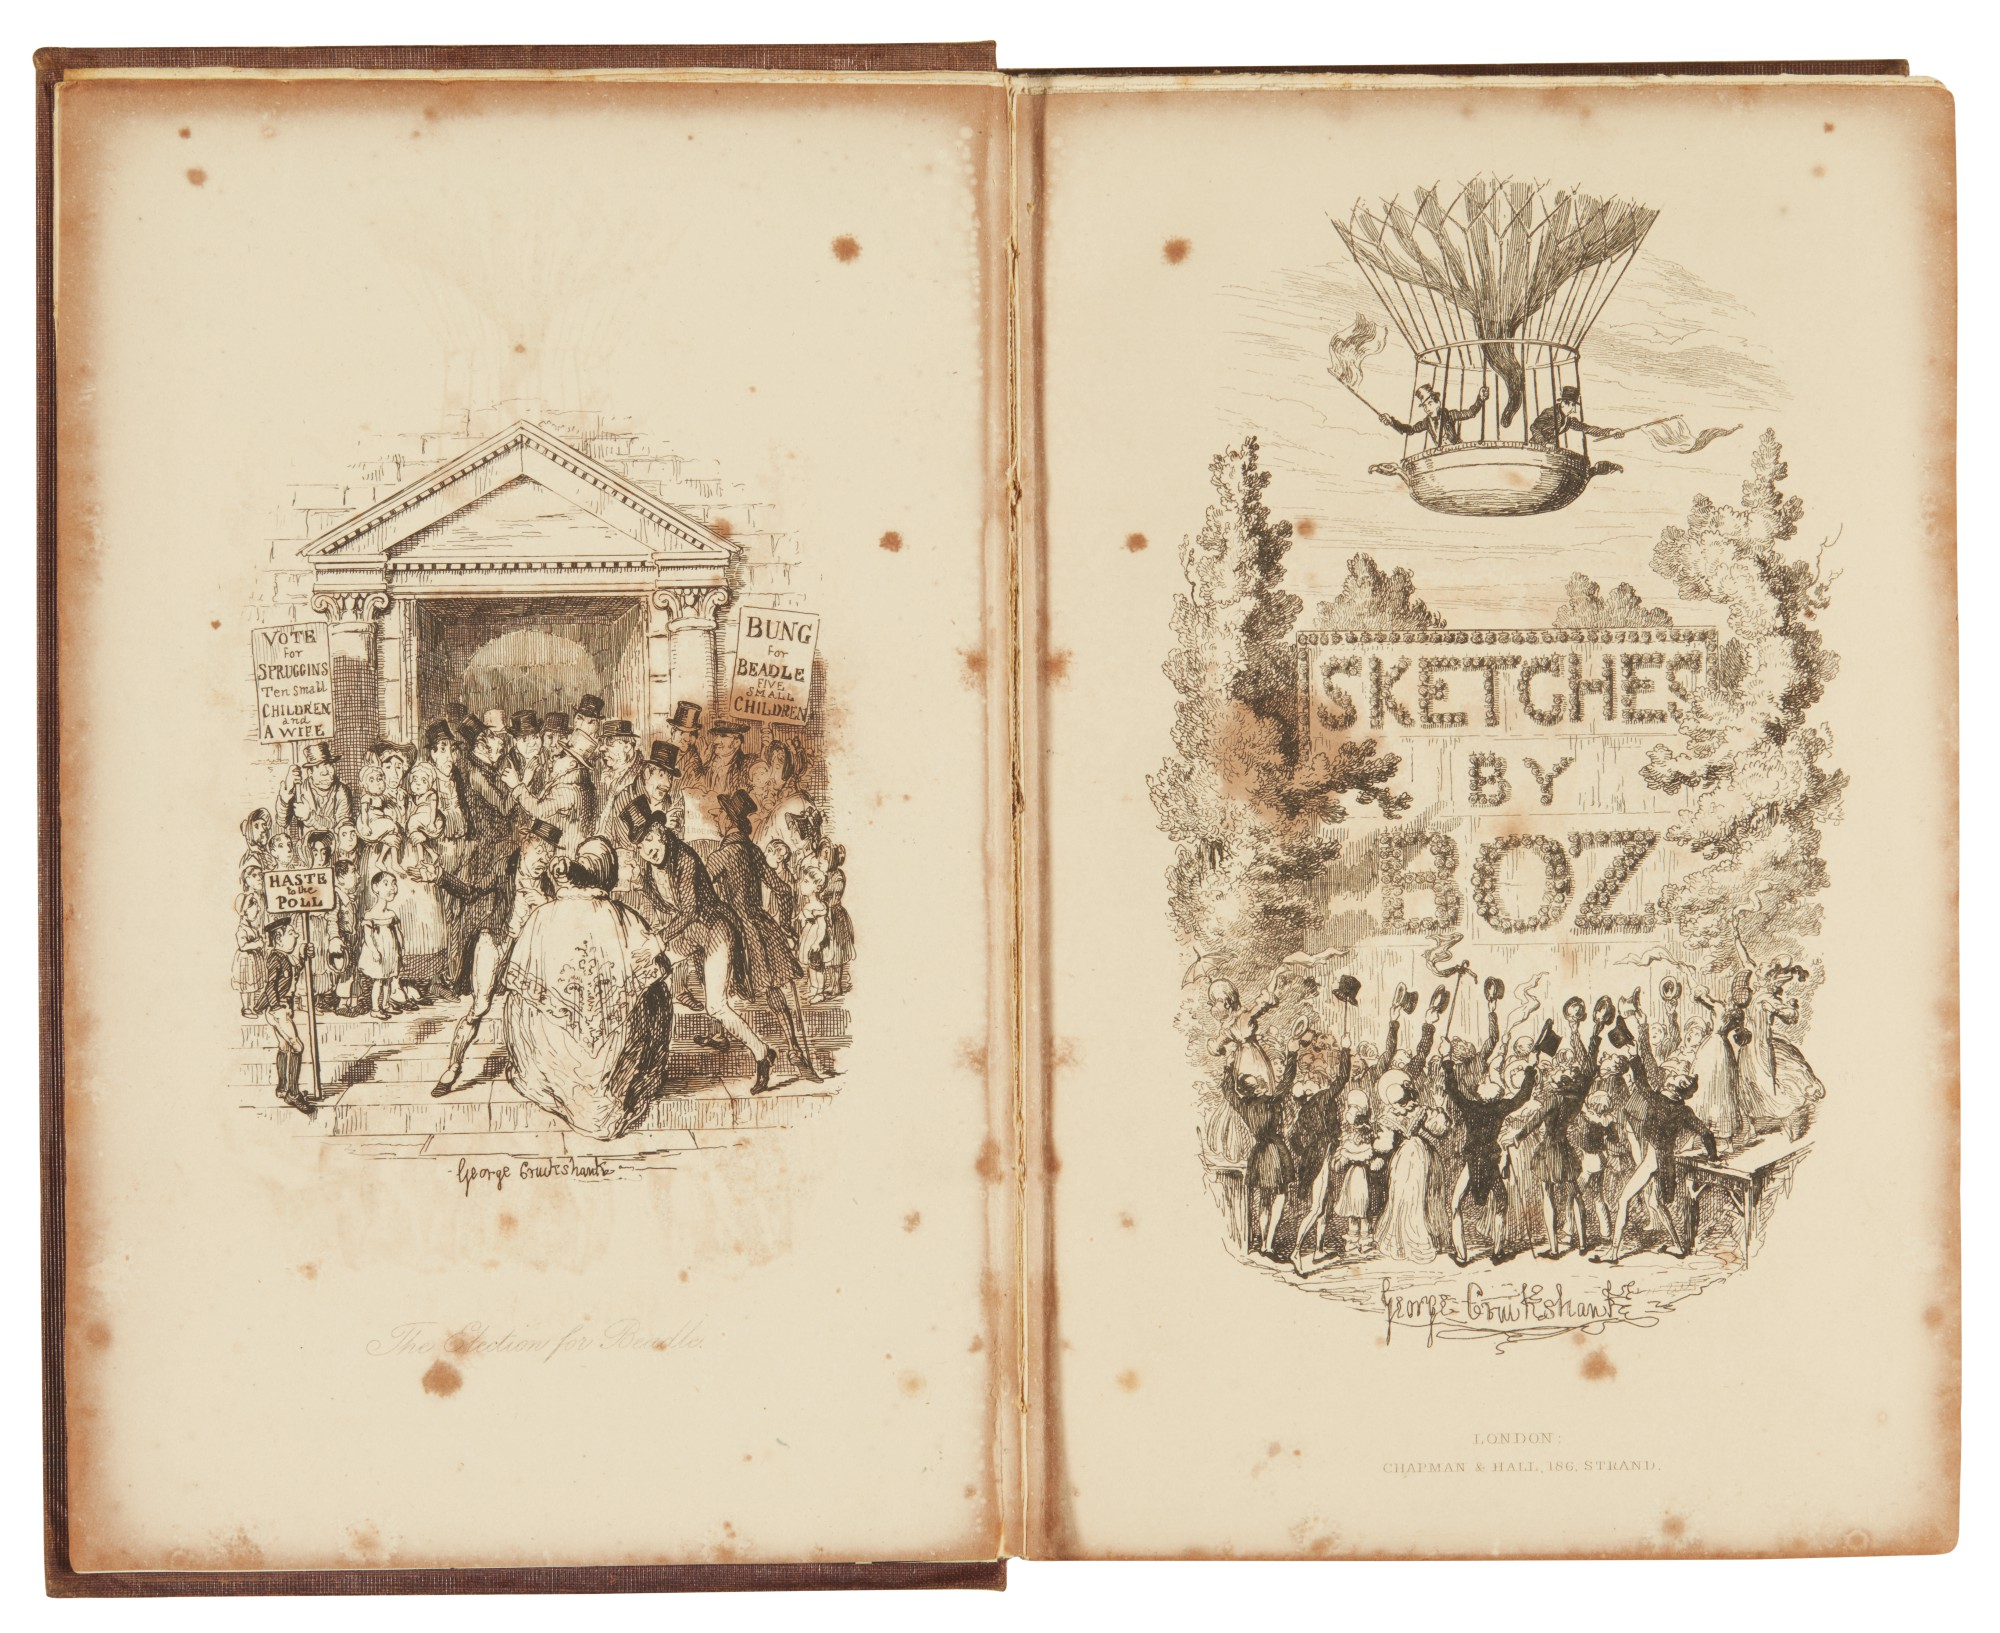 Dickens, Sketches by Boz, 1839, first one volume edition